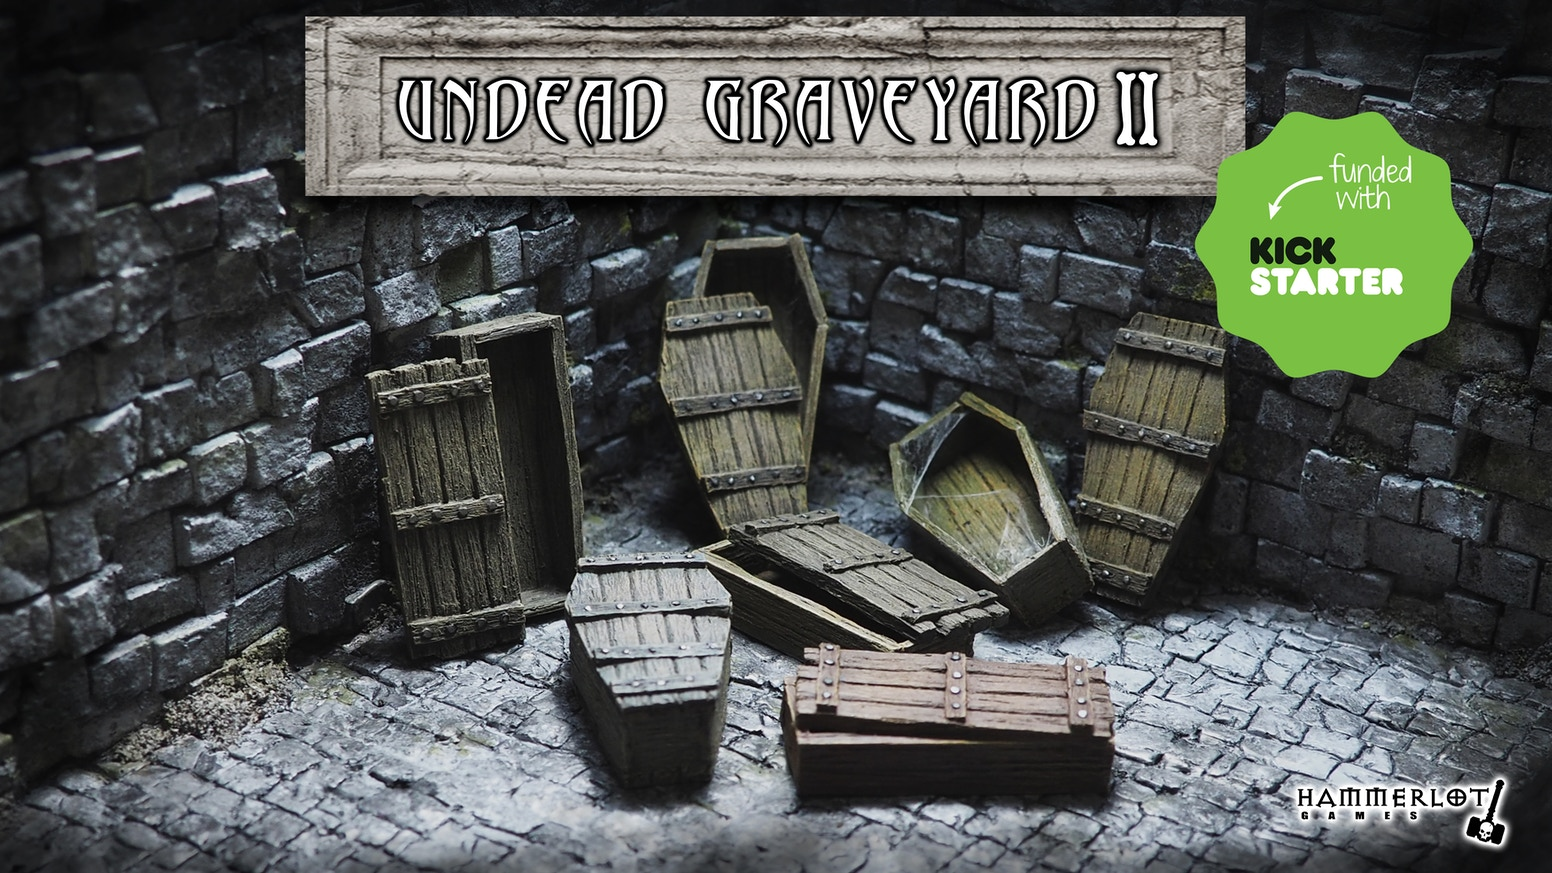 Undead scenery, miniatures 28/30mm, coffins, tombs. Board games, tabletop, RPG, fantasy. For painters, collectors and zombie lovers.